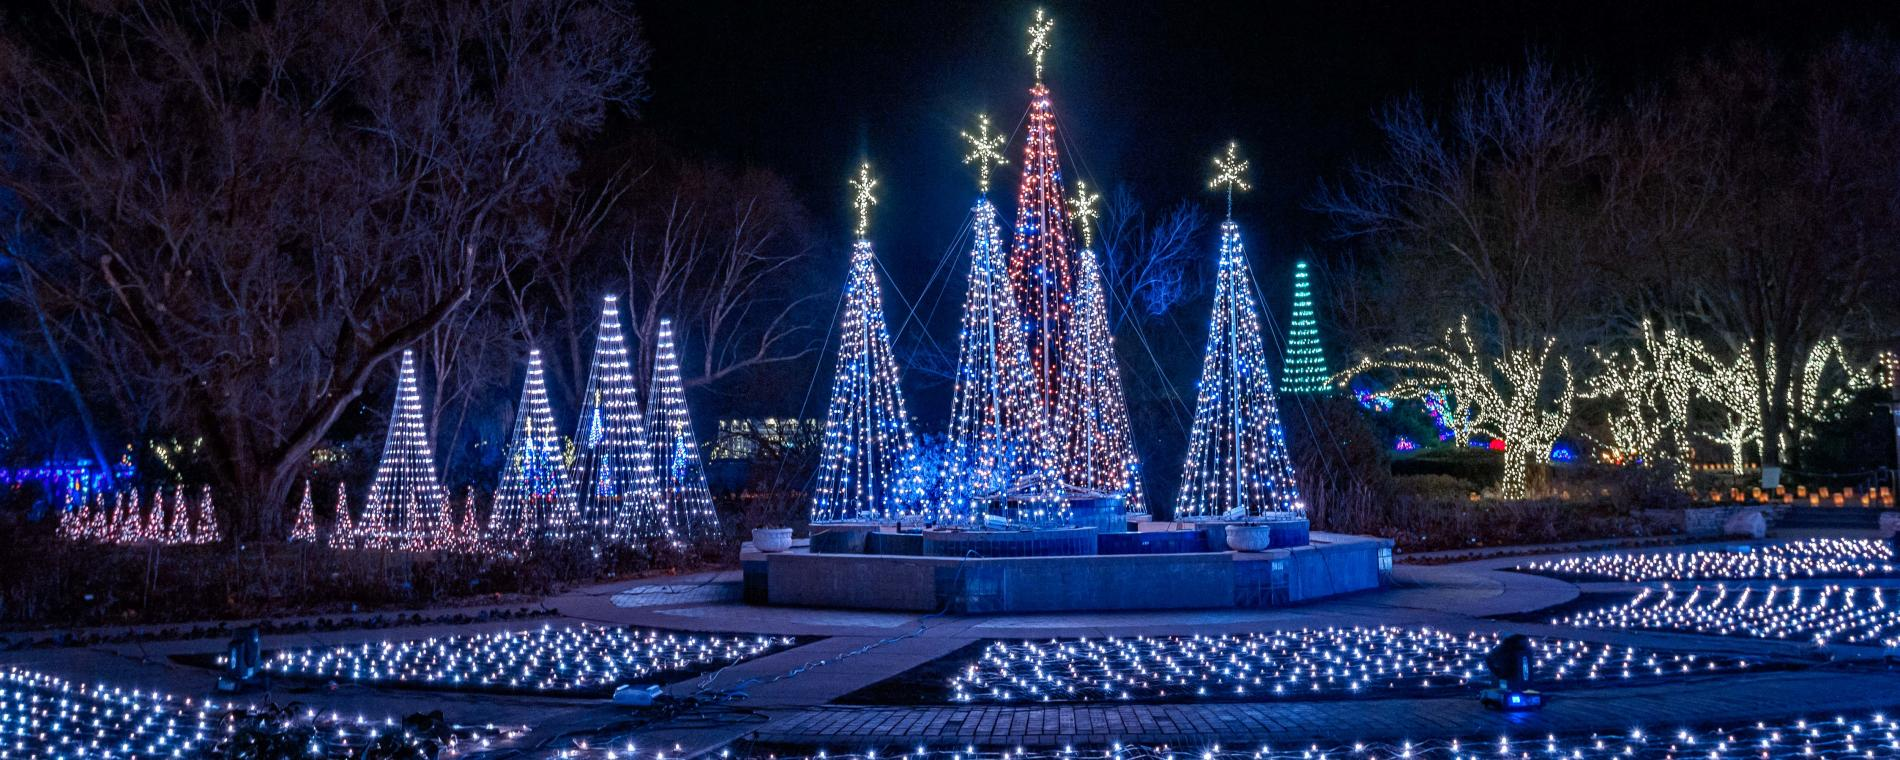 Wichita Christmas Light Displays 2020 Best places to see Christmas lights in Wichita 2019